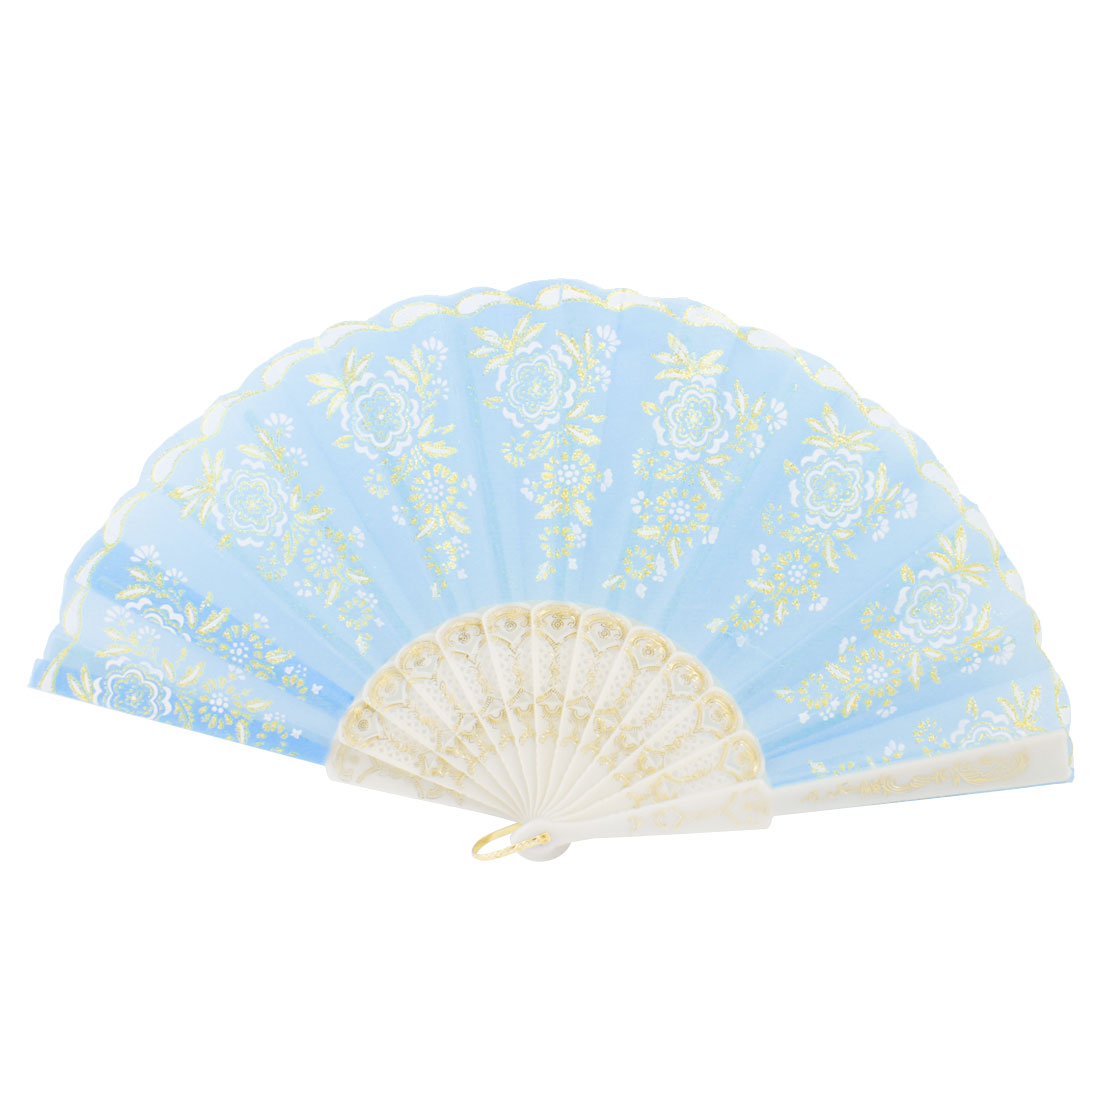 Plastic Frame Gold Tone Glittery Powder Decor Floral Pattern Foldable Hand Fan Teal White